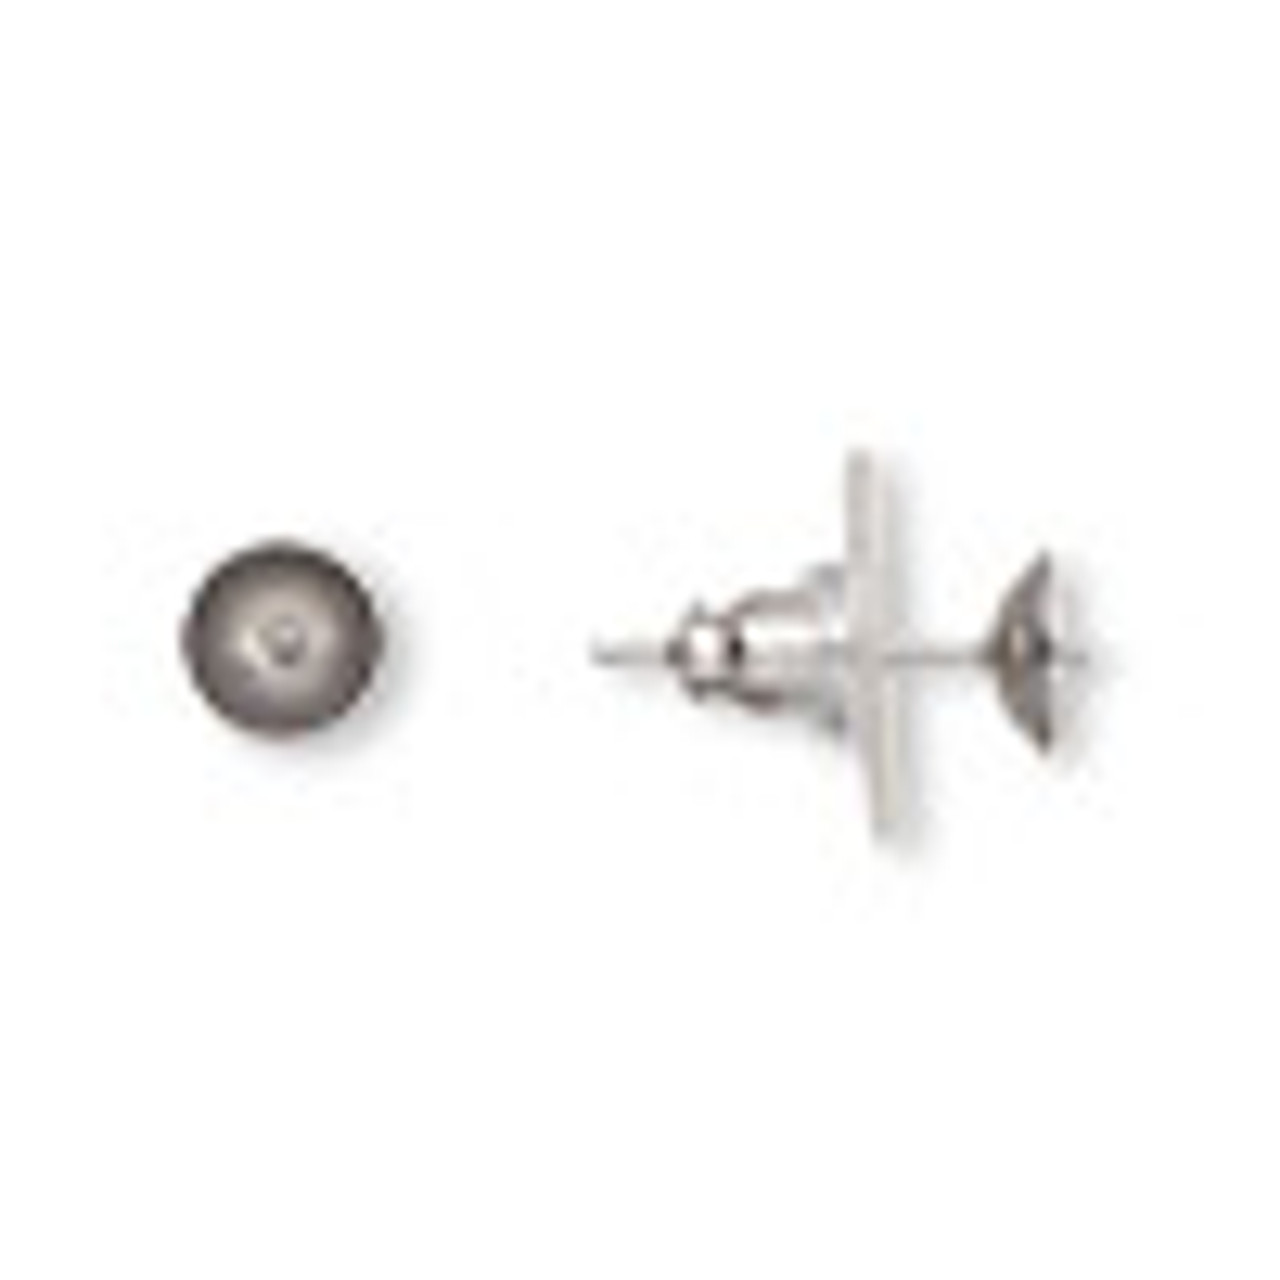 Earstud, glue-in, stainless steel / acrylic / rubber, clear, 6mm cup with 2mm peg, fits 6-8mm half-drilled bead